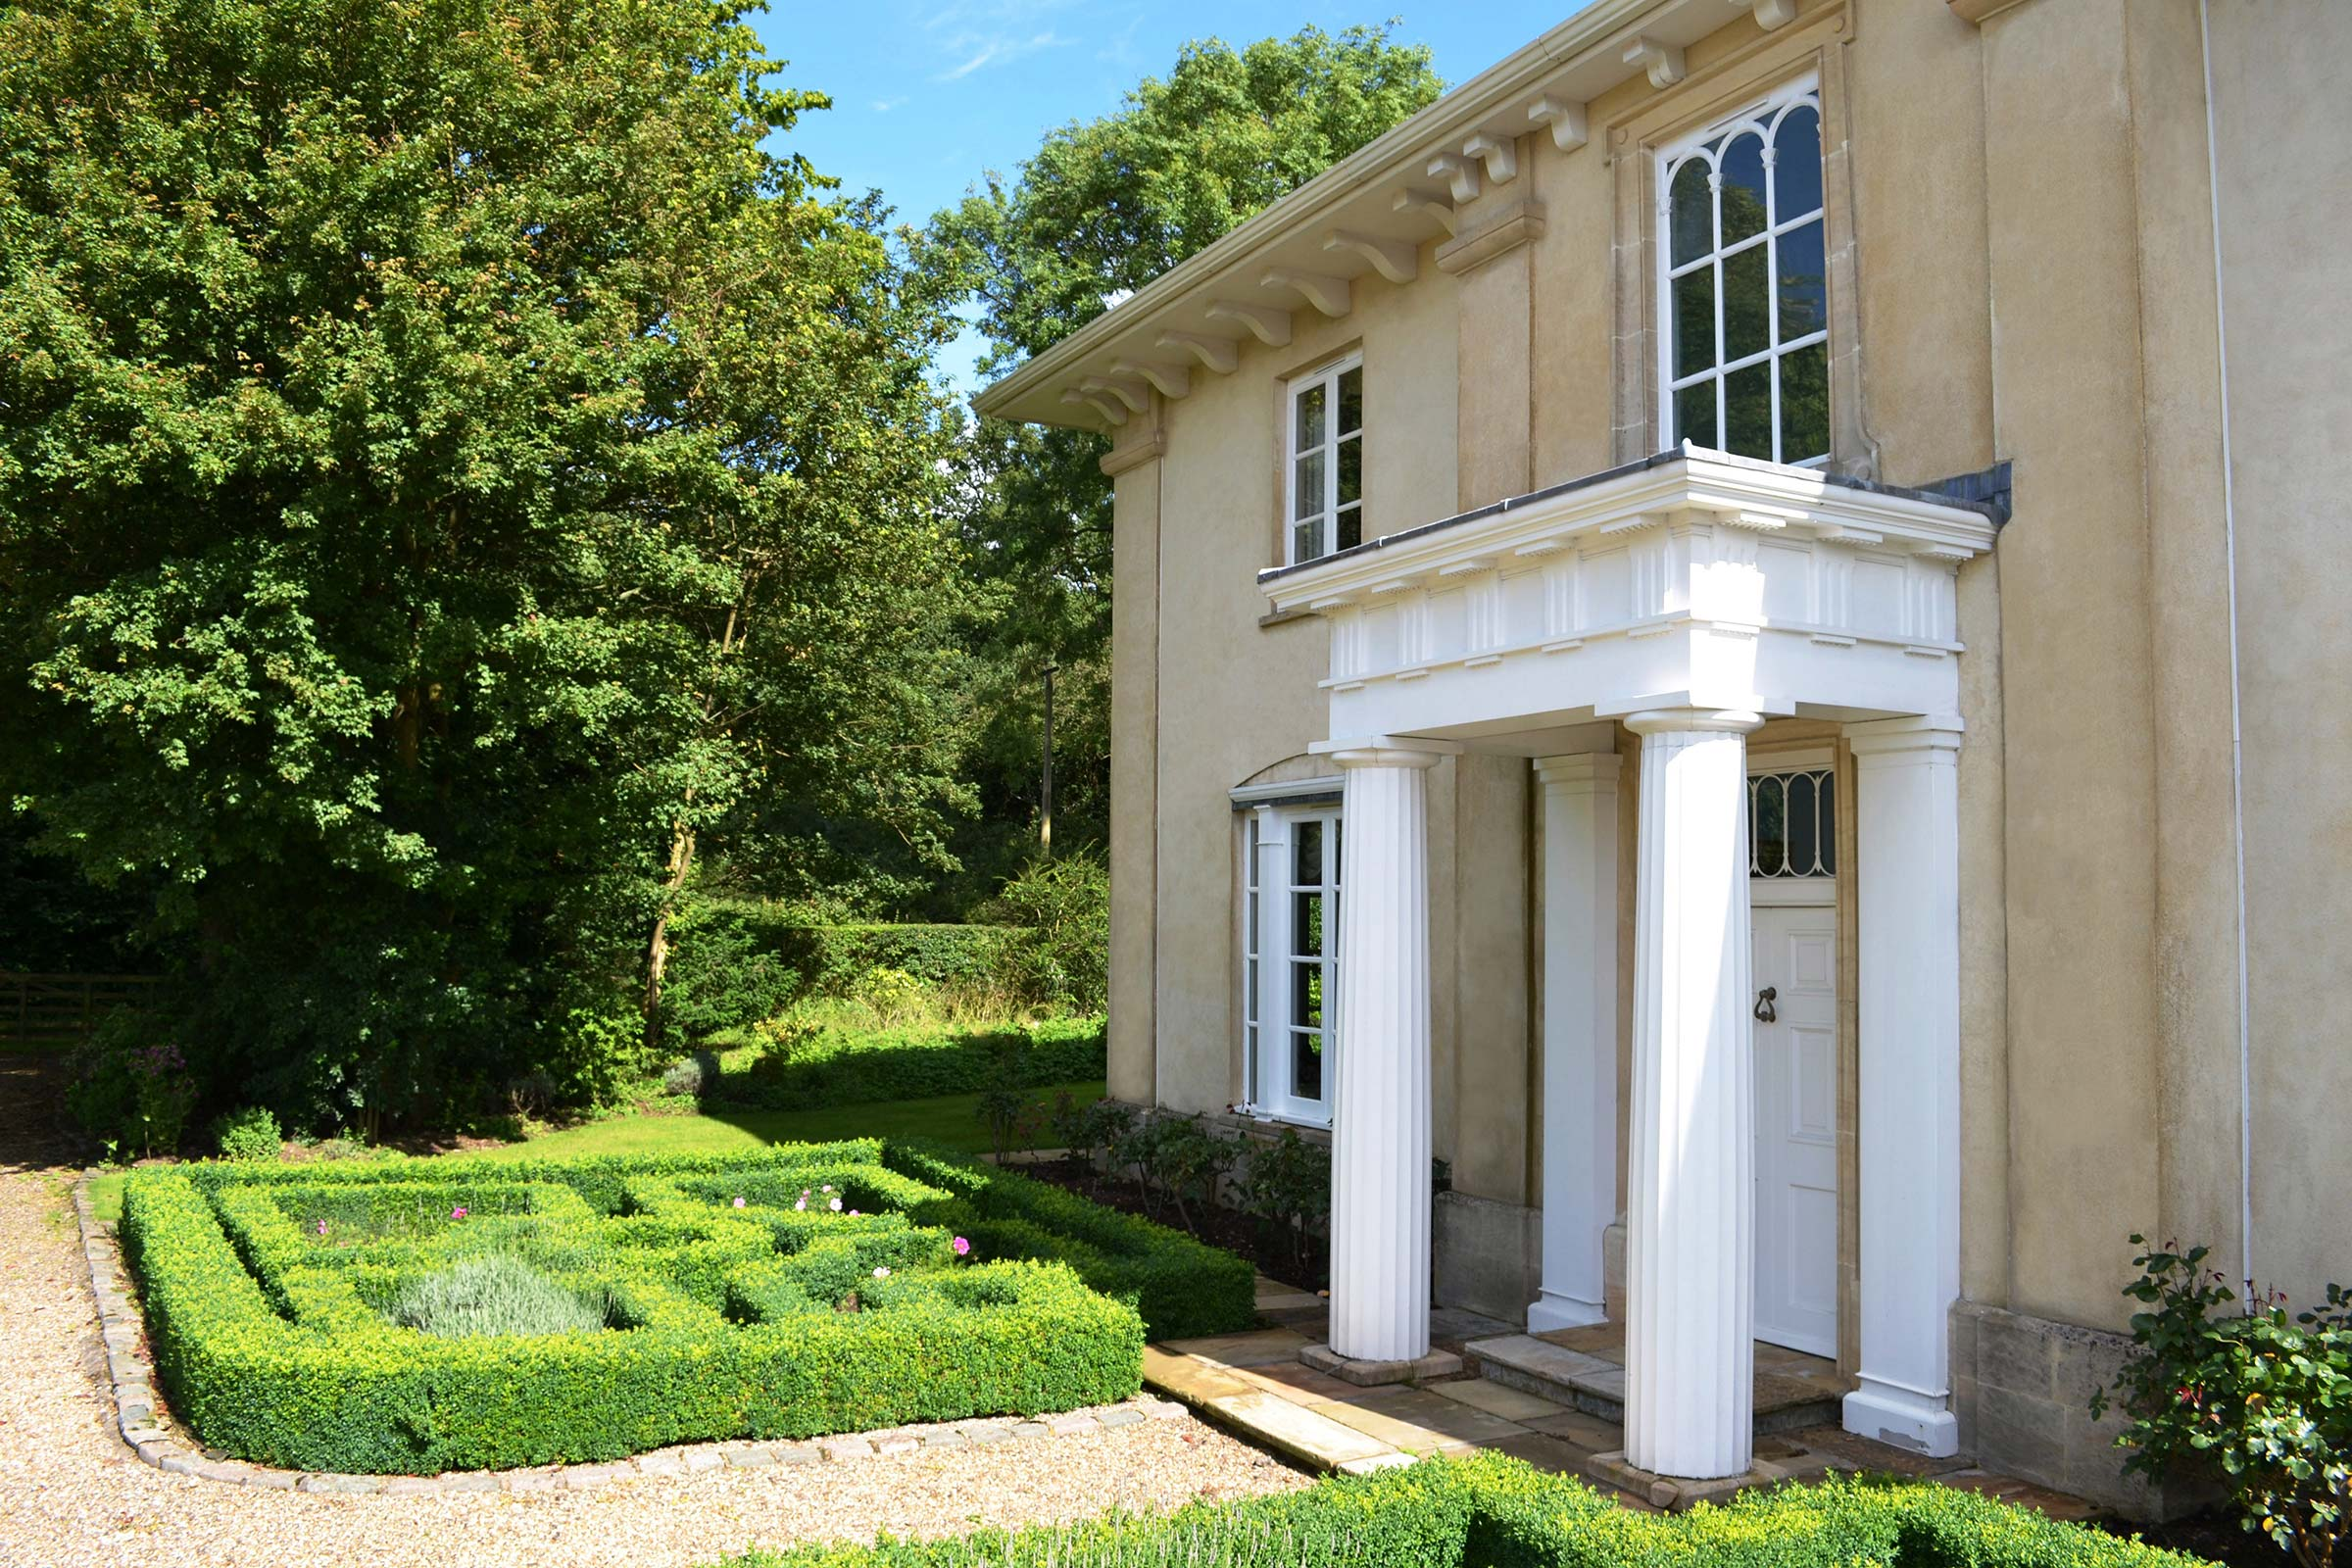 Regency Farmhouse, Hertfordshire